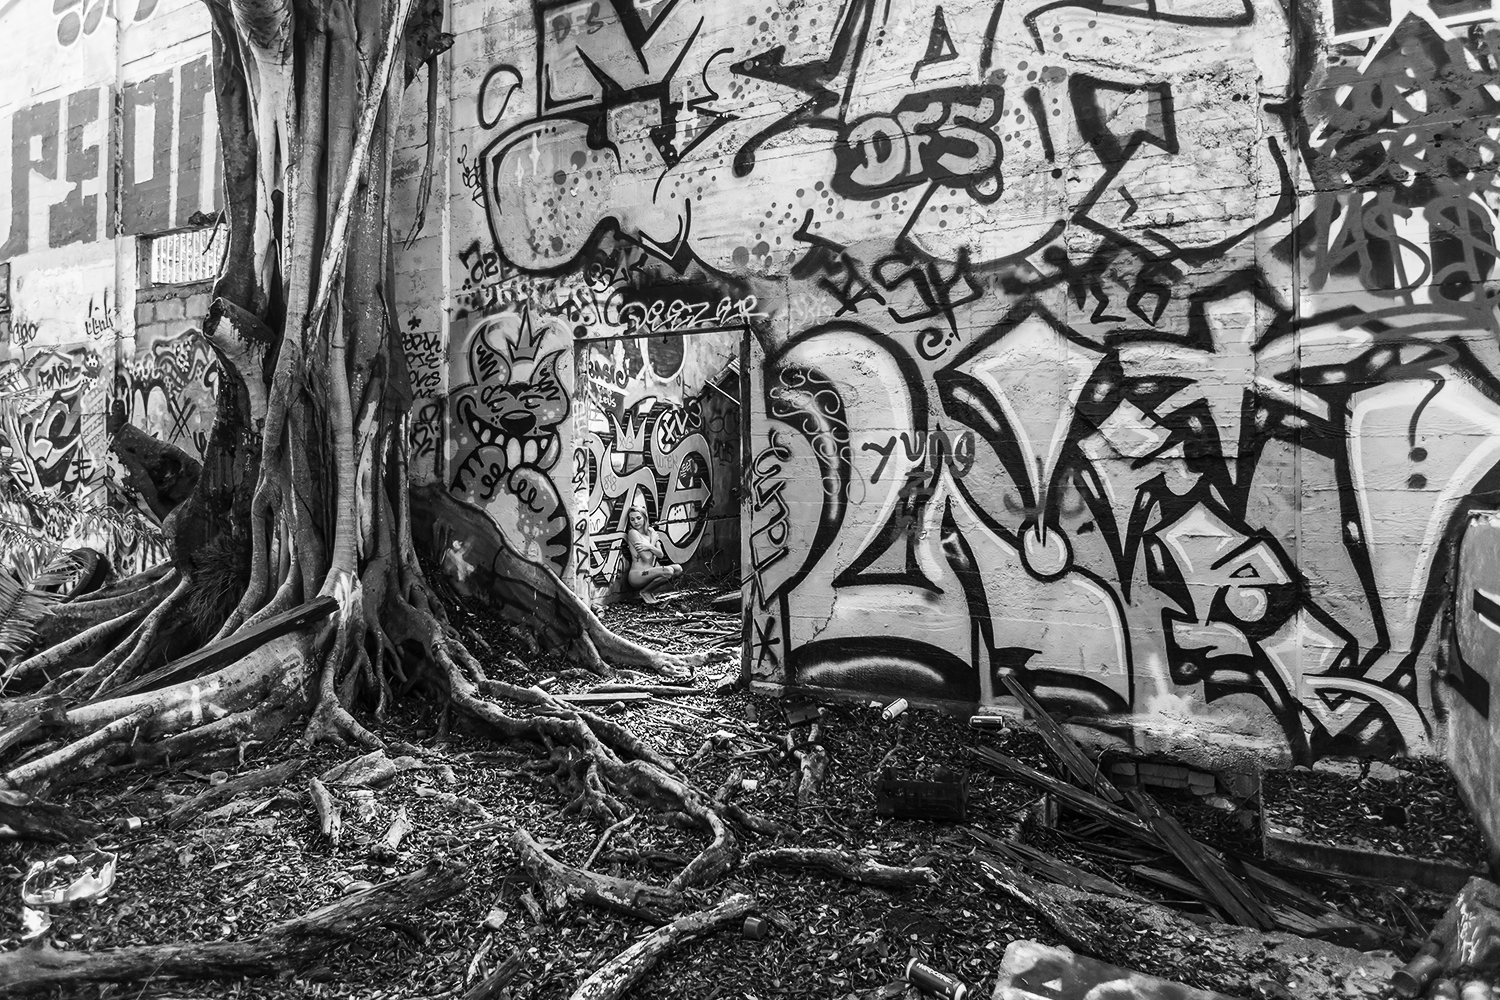 Brian Cattelle, BARE USA - Walalee Boys Industrial School, HI - nude in abandoned structure with graffiti and overgrowth